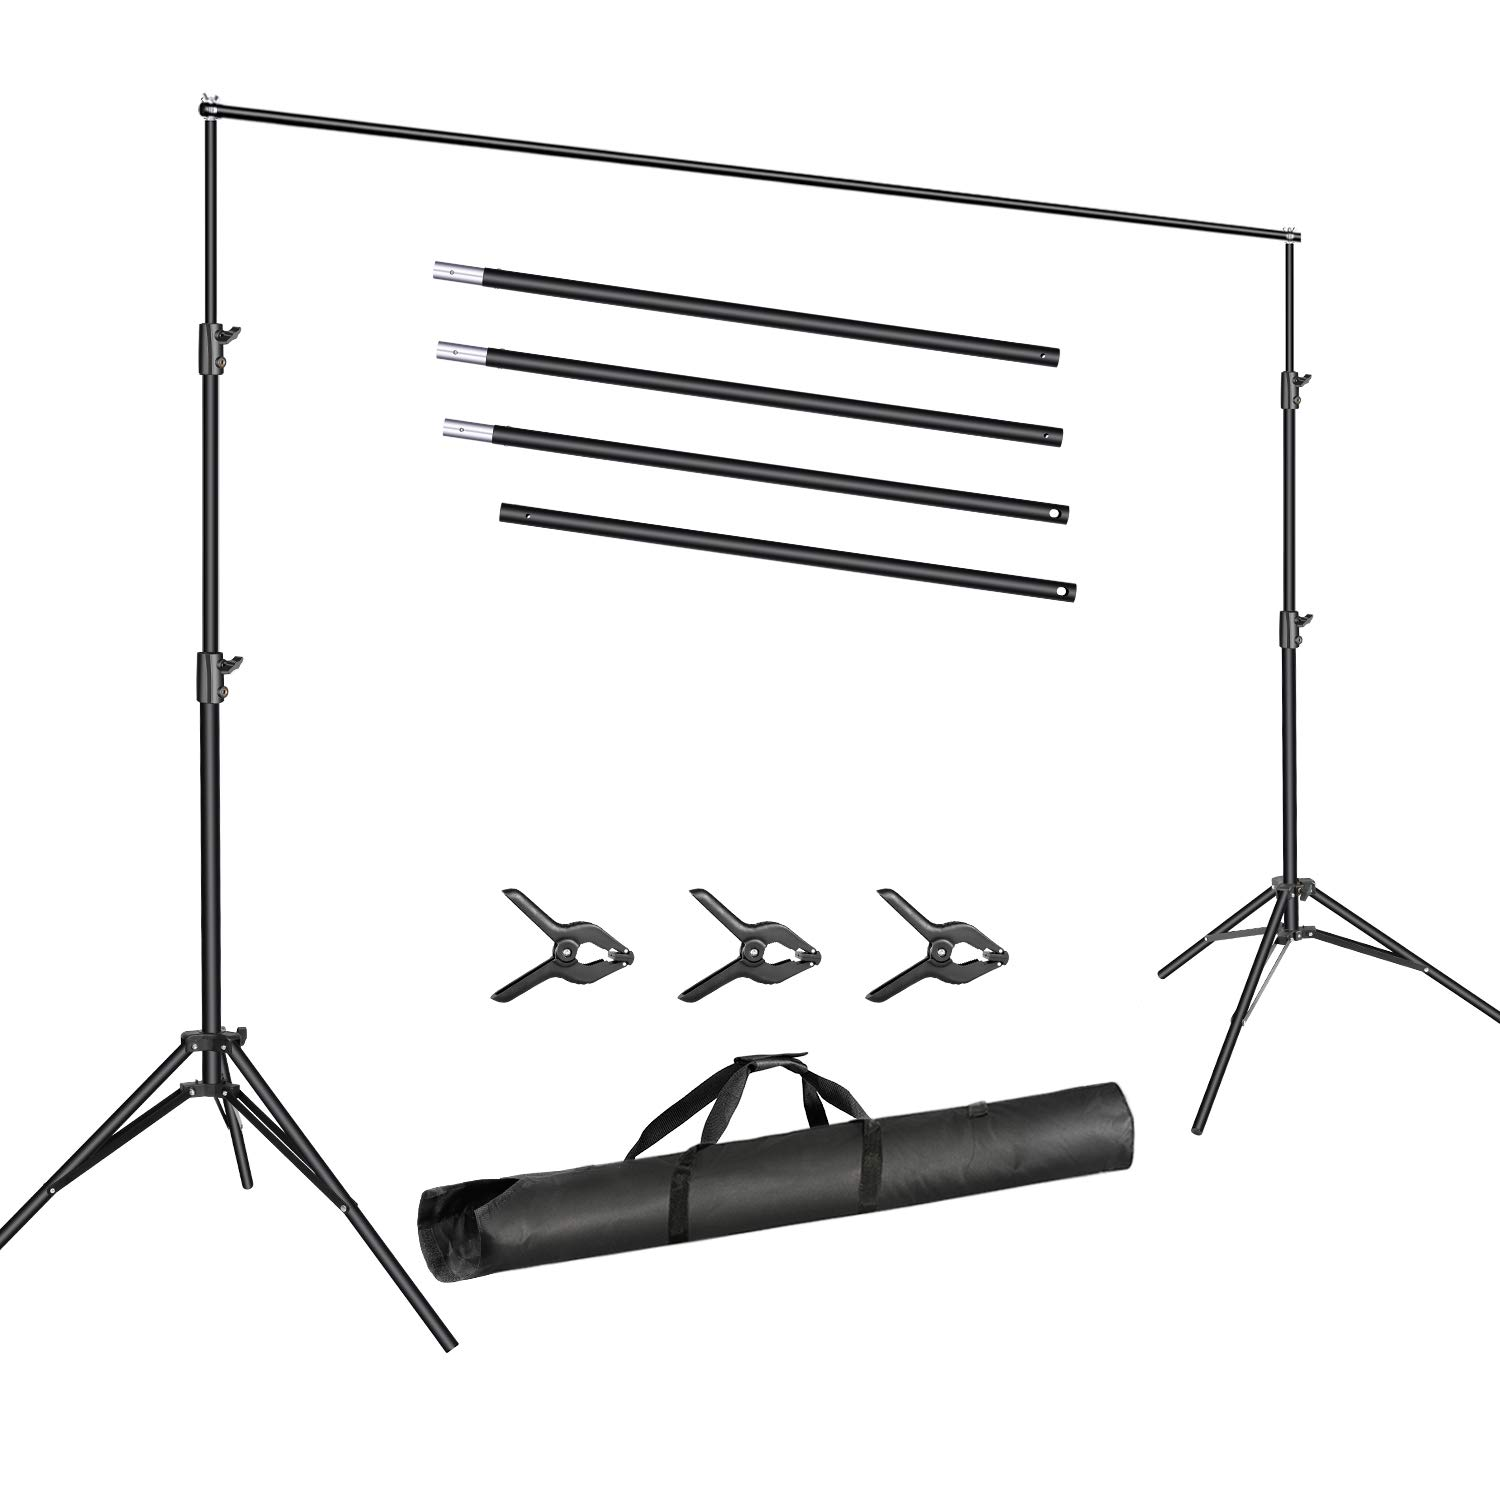 Neewer Photo Video Studio 10ft/3m Wide Cross Bar 6.6ft/2m Tall Adjustable Background Stand Backdrop Support System Kit with 3 Backdrop Clamps and Carrying Bag for Portrait Product Video Photography